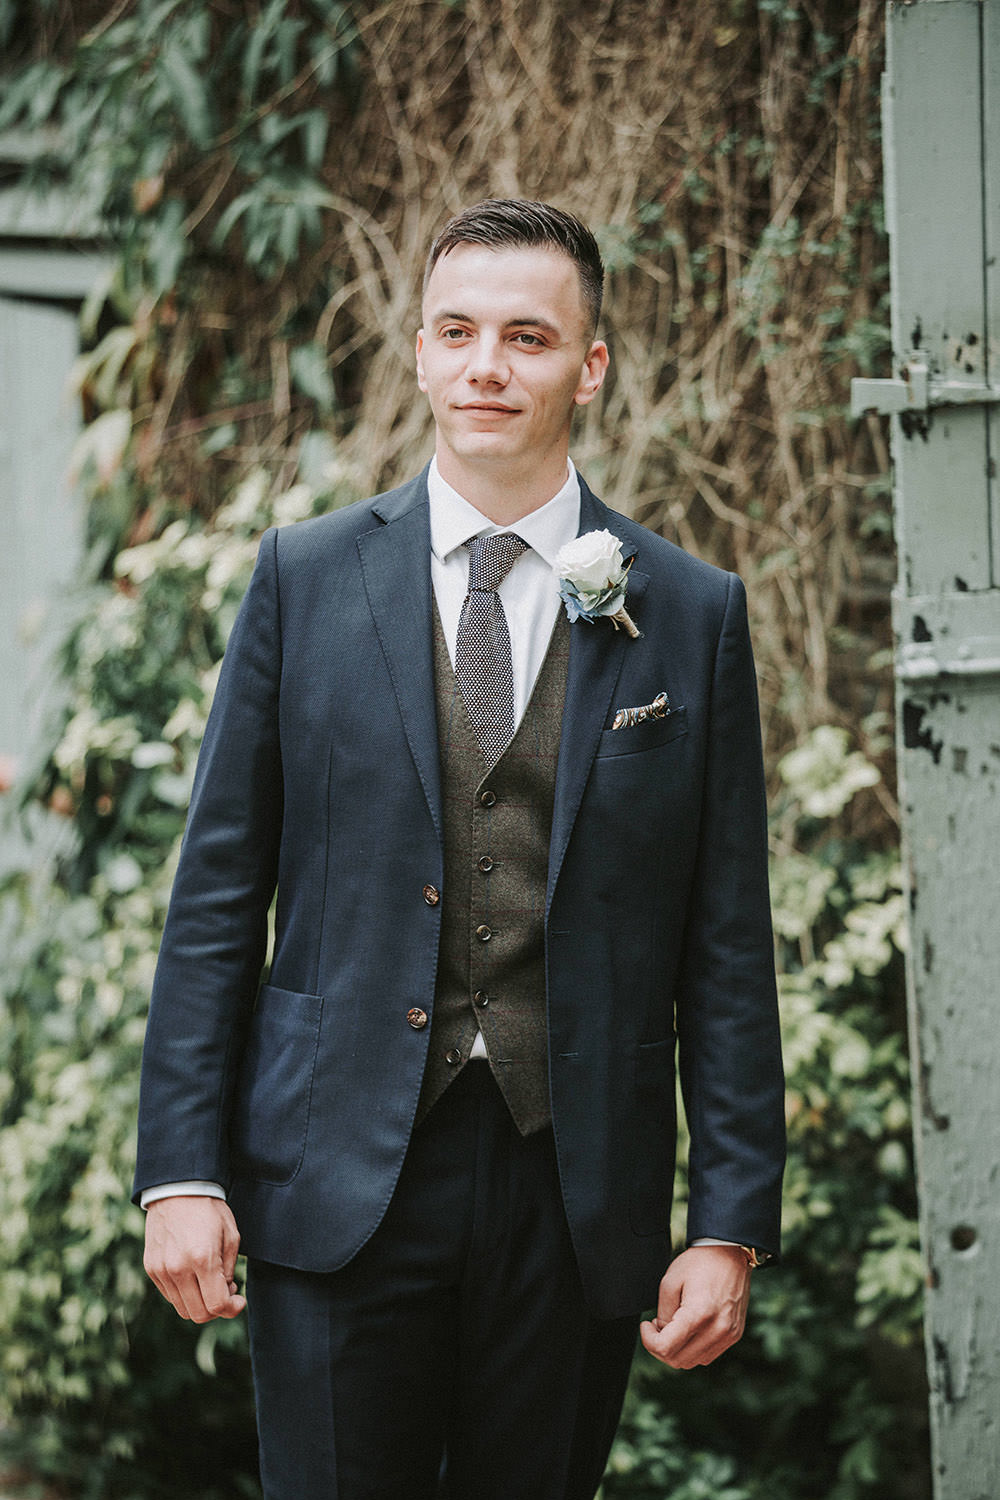 Groom Suit Navy Blue Waistcoat Green Knitted Tie Groomsmen Ever After Wedding Younger Photography